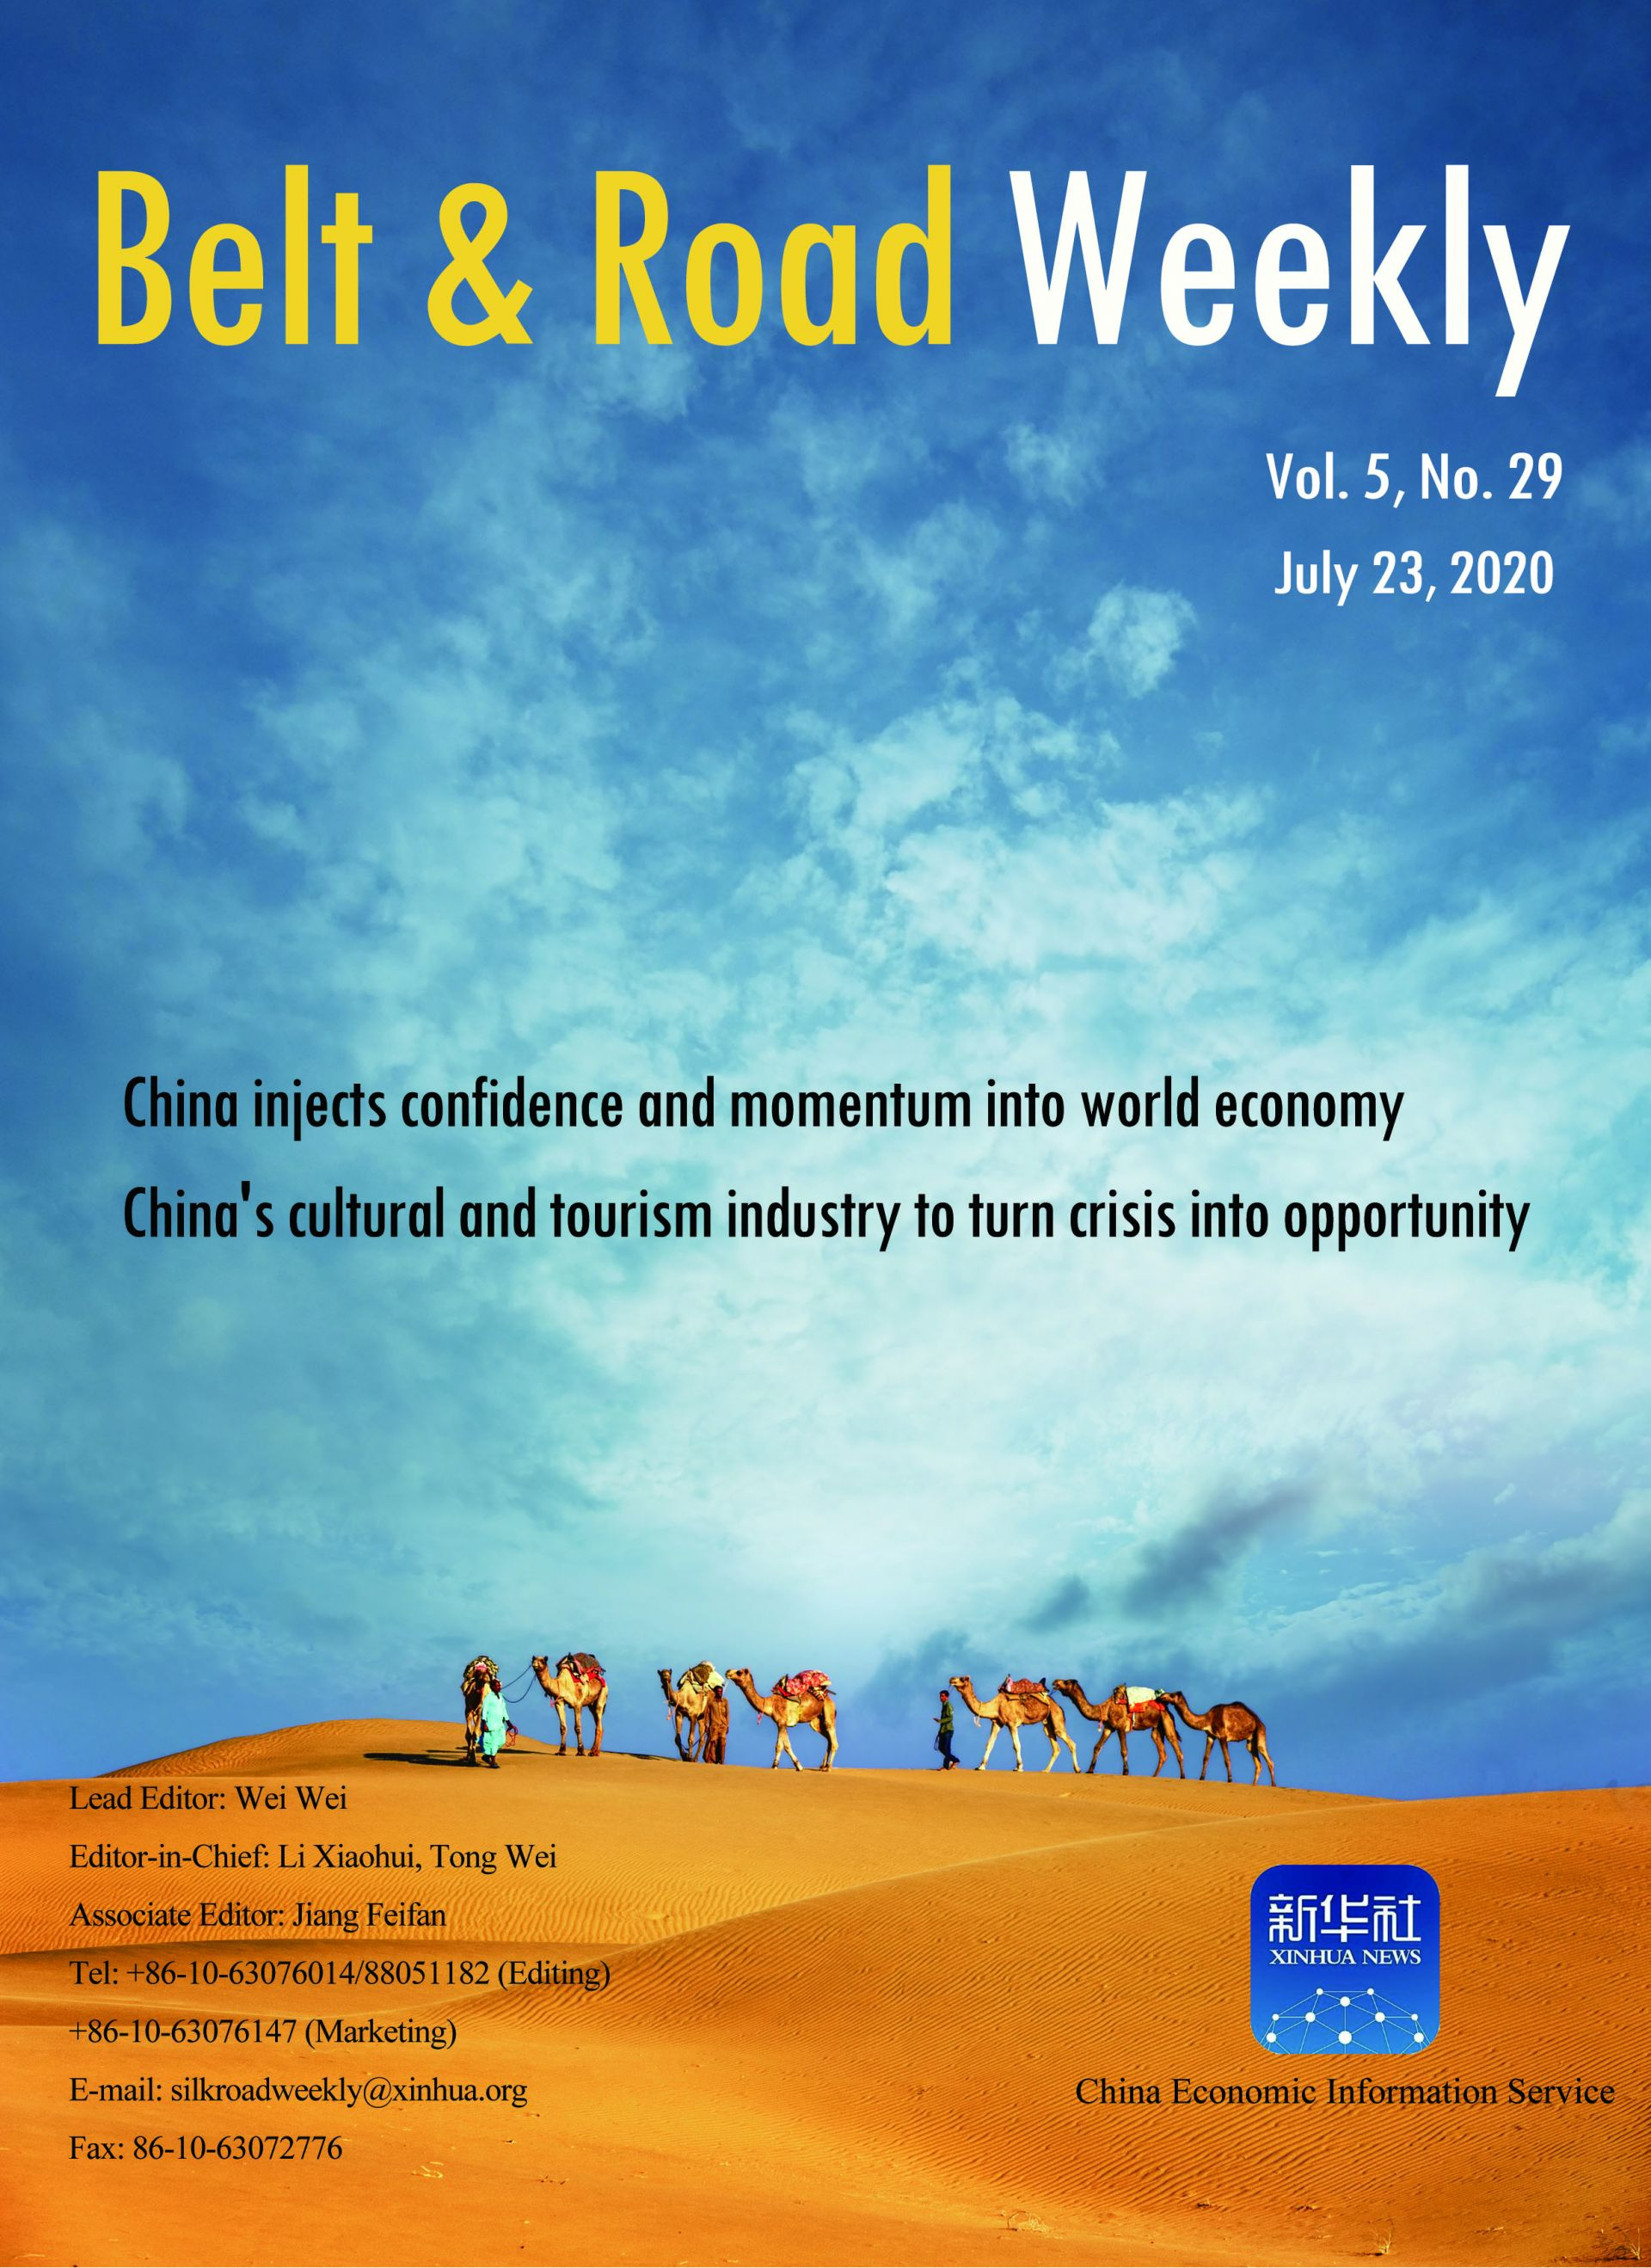 Belt and Road Weekly Vol. 5 No. 29